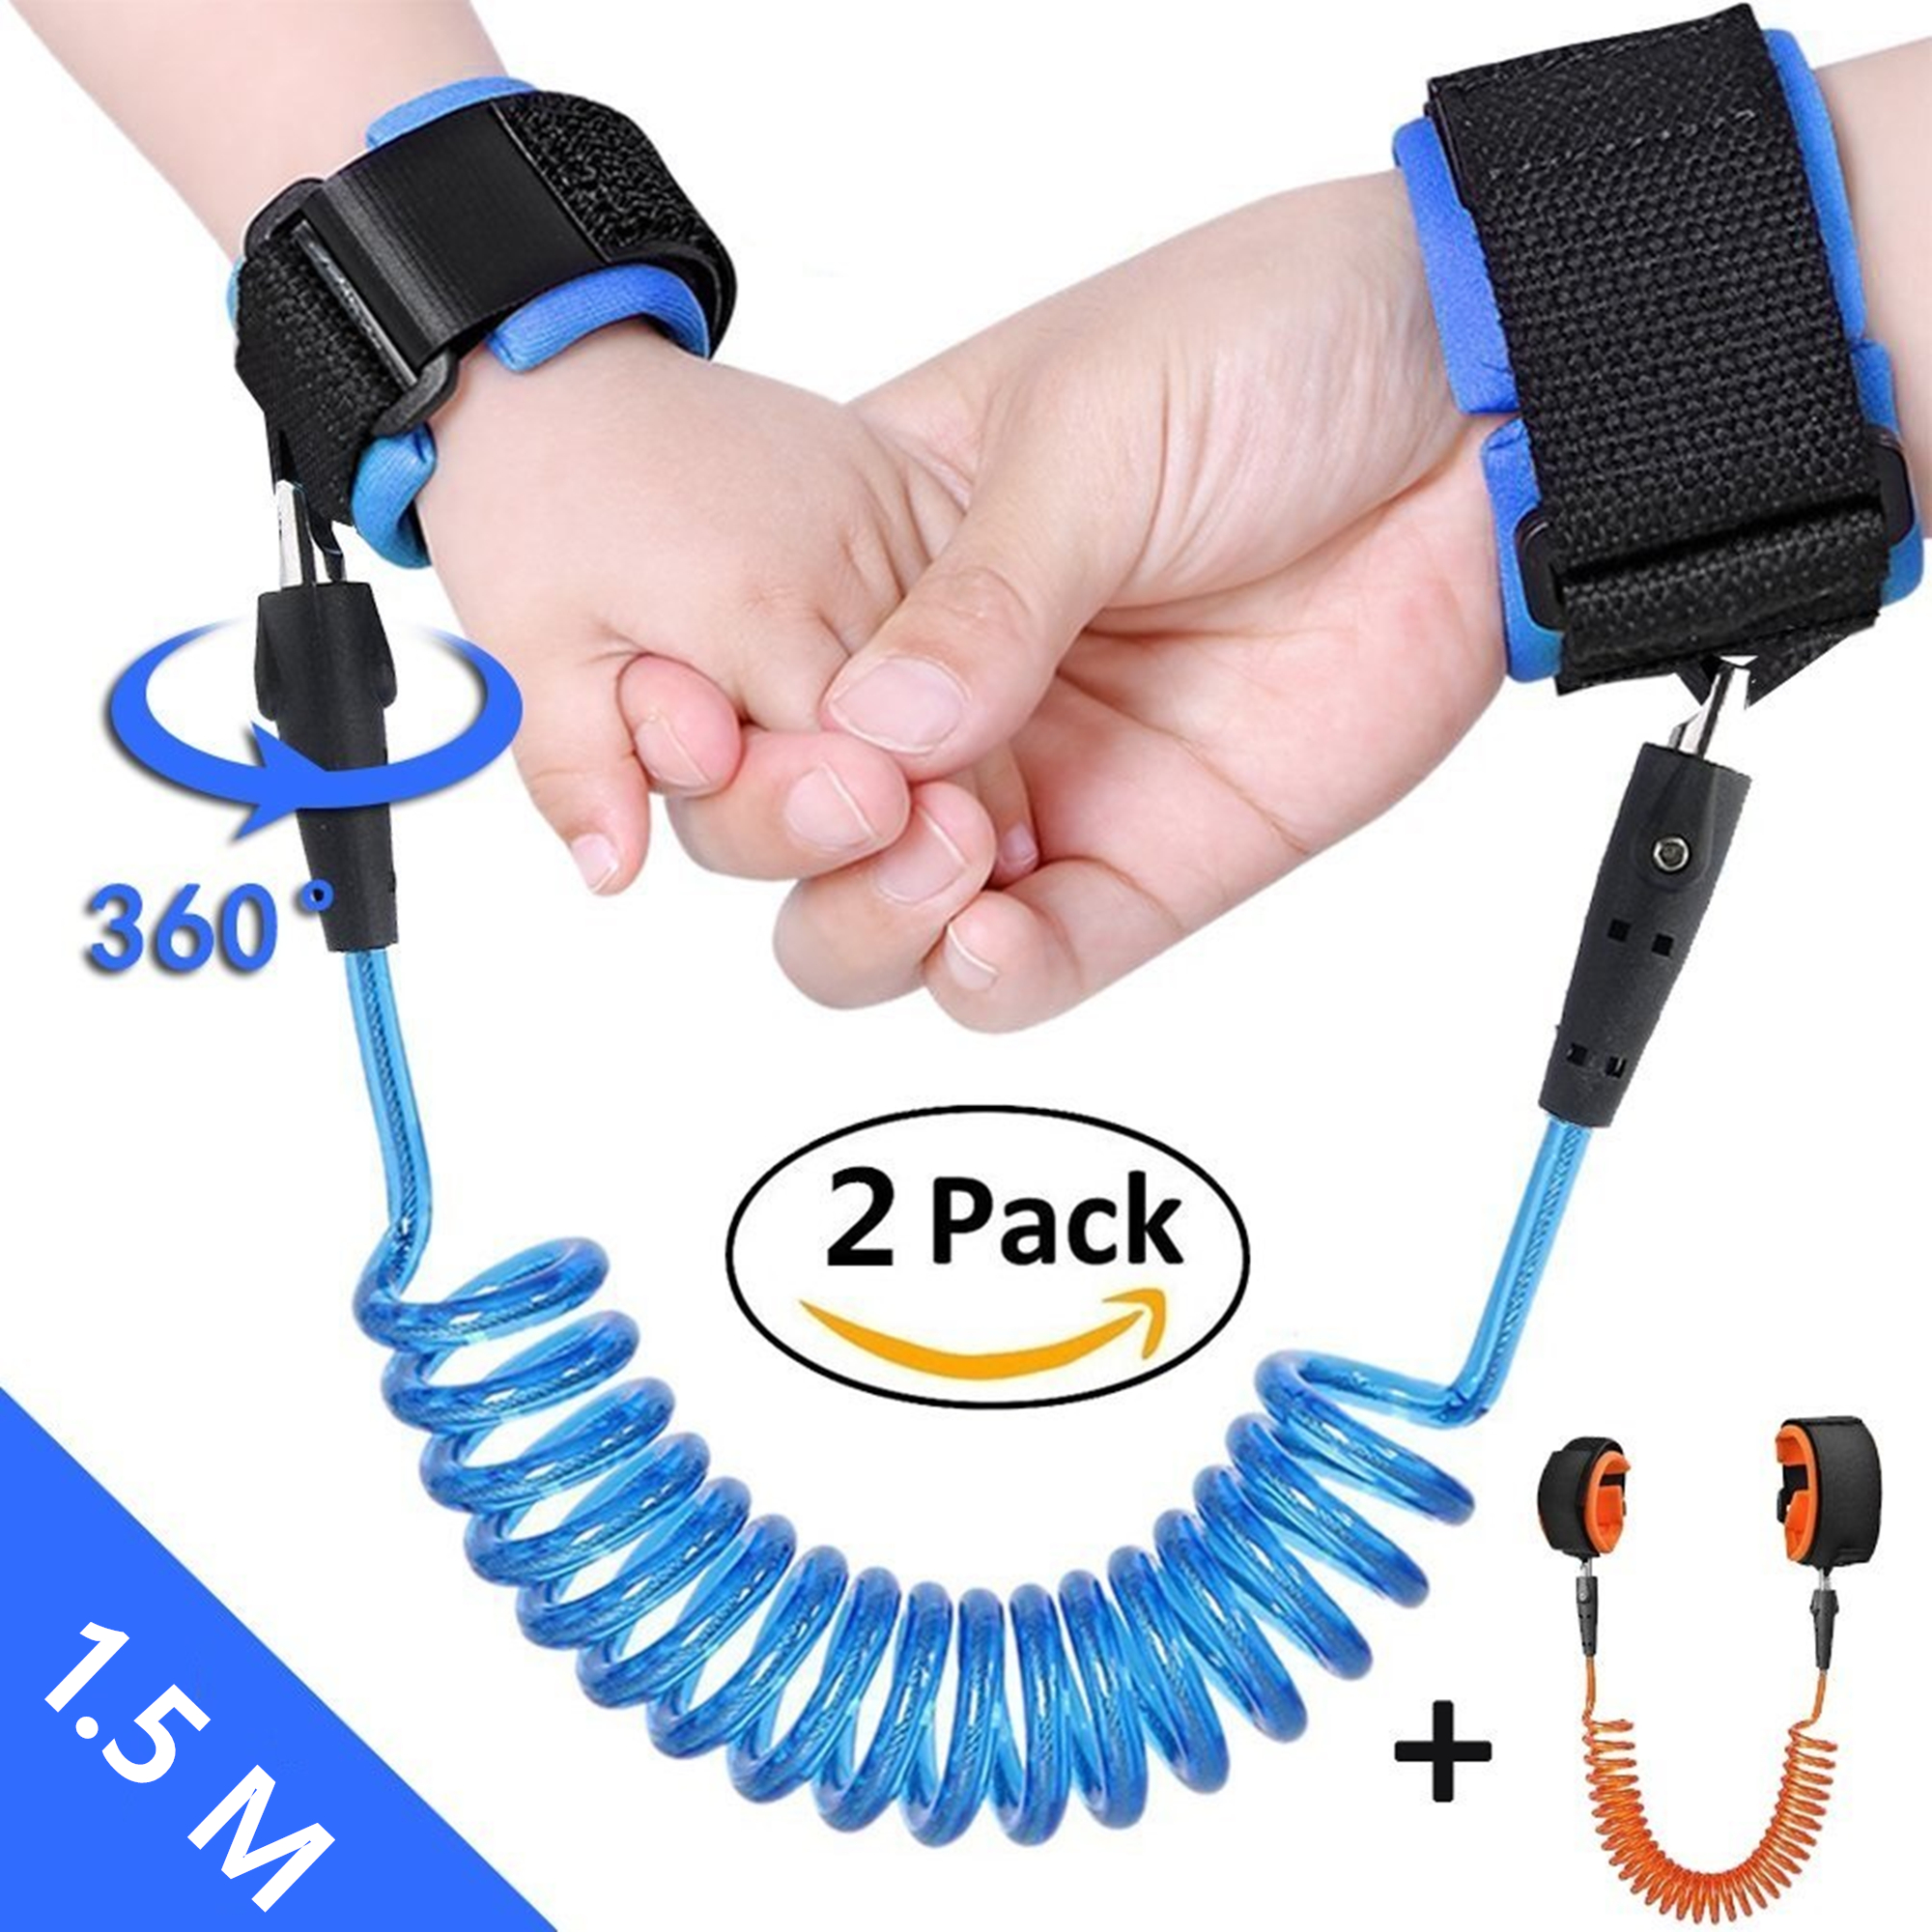 2 Pack Moretek Child Anti Lost Safety Harness Link, Adjustable Skin Friendly Anti Lost Belt Wrist Safe Link Wrist Straps for Babies Kids Toddlers Runners(1.5m, Blue+Orange)